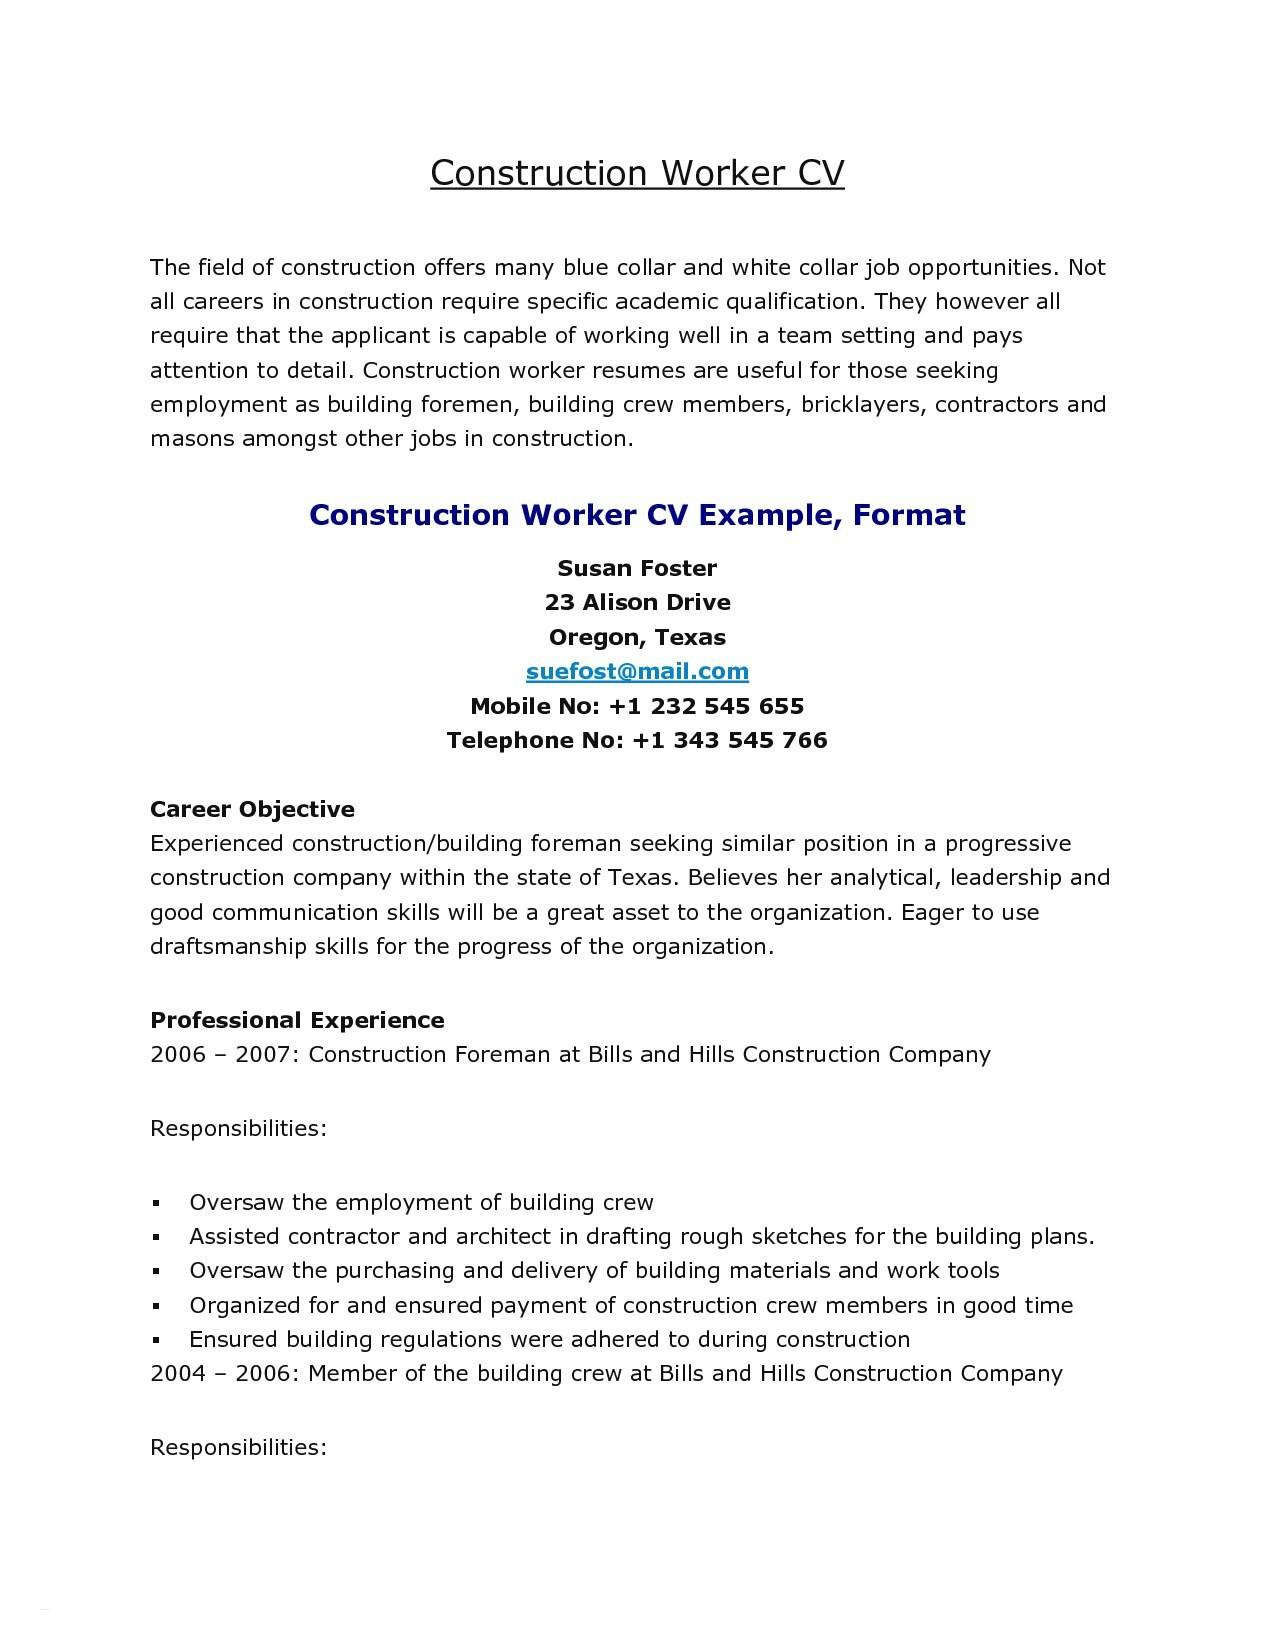 Good Resume Summary For Construction Worker